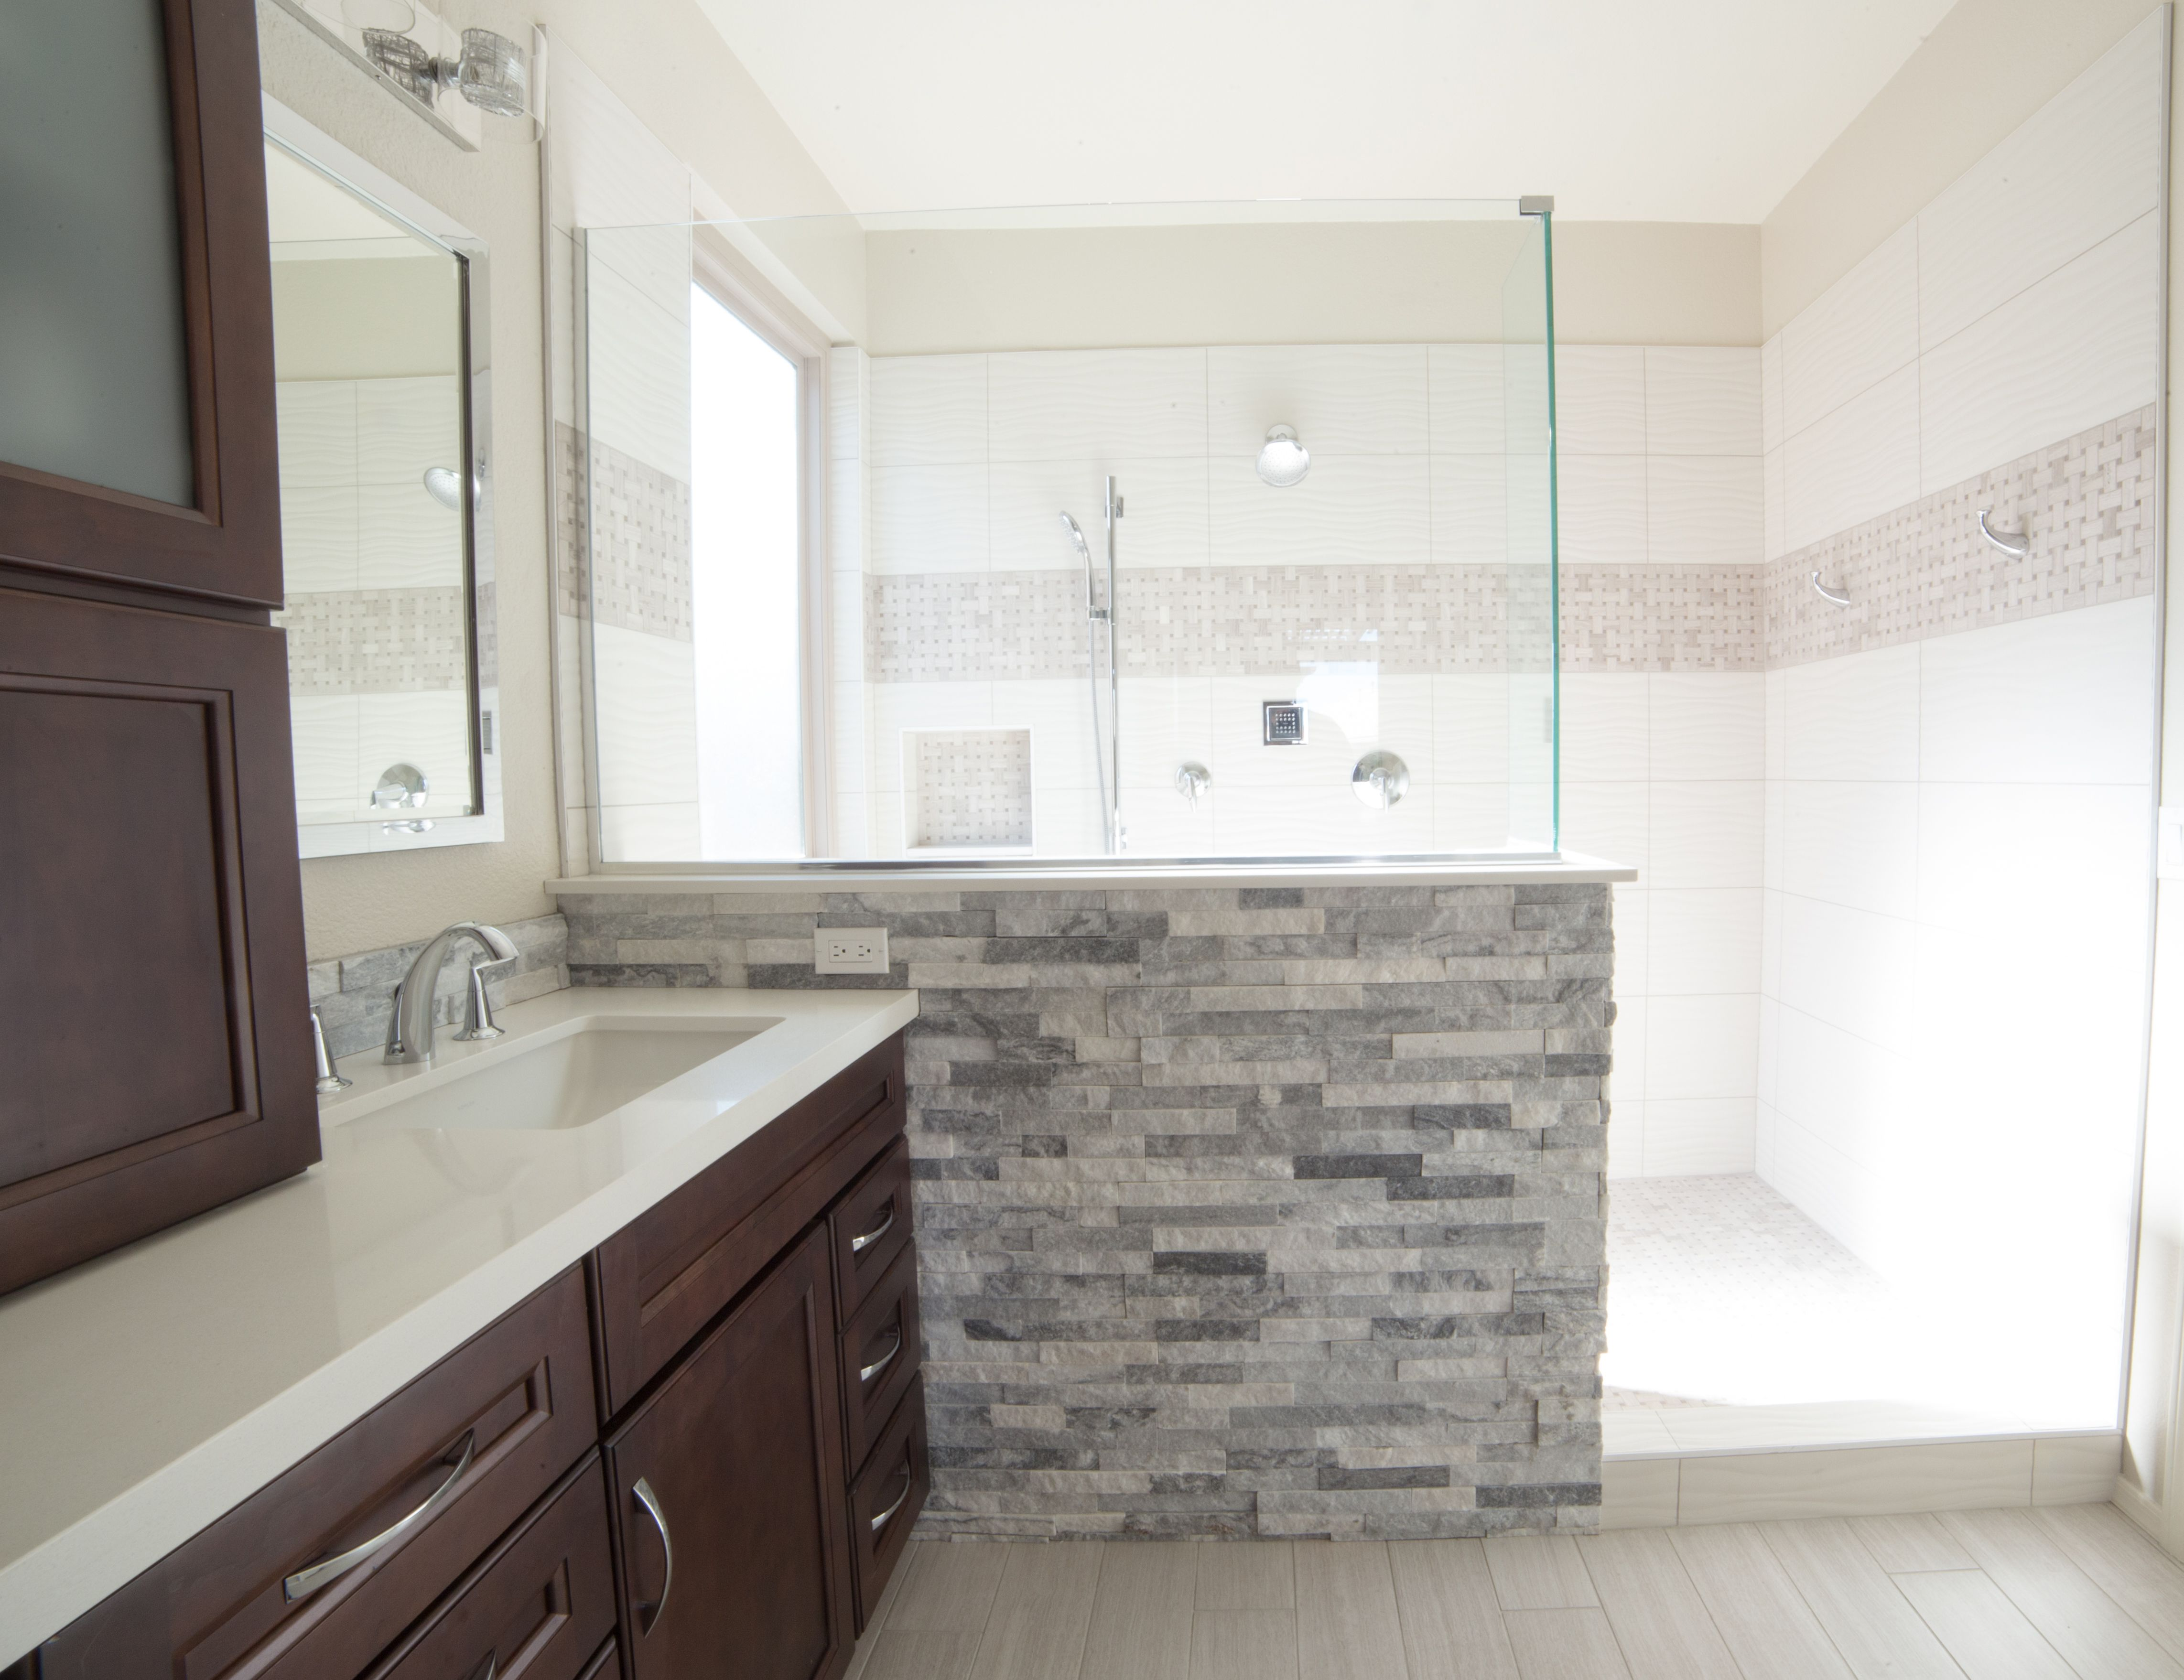 Complete master bathroom remodel adding a spacious walk-in shower ...